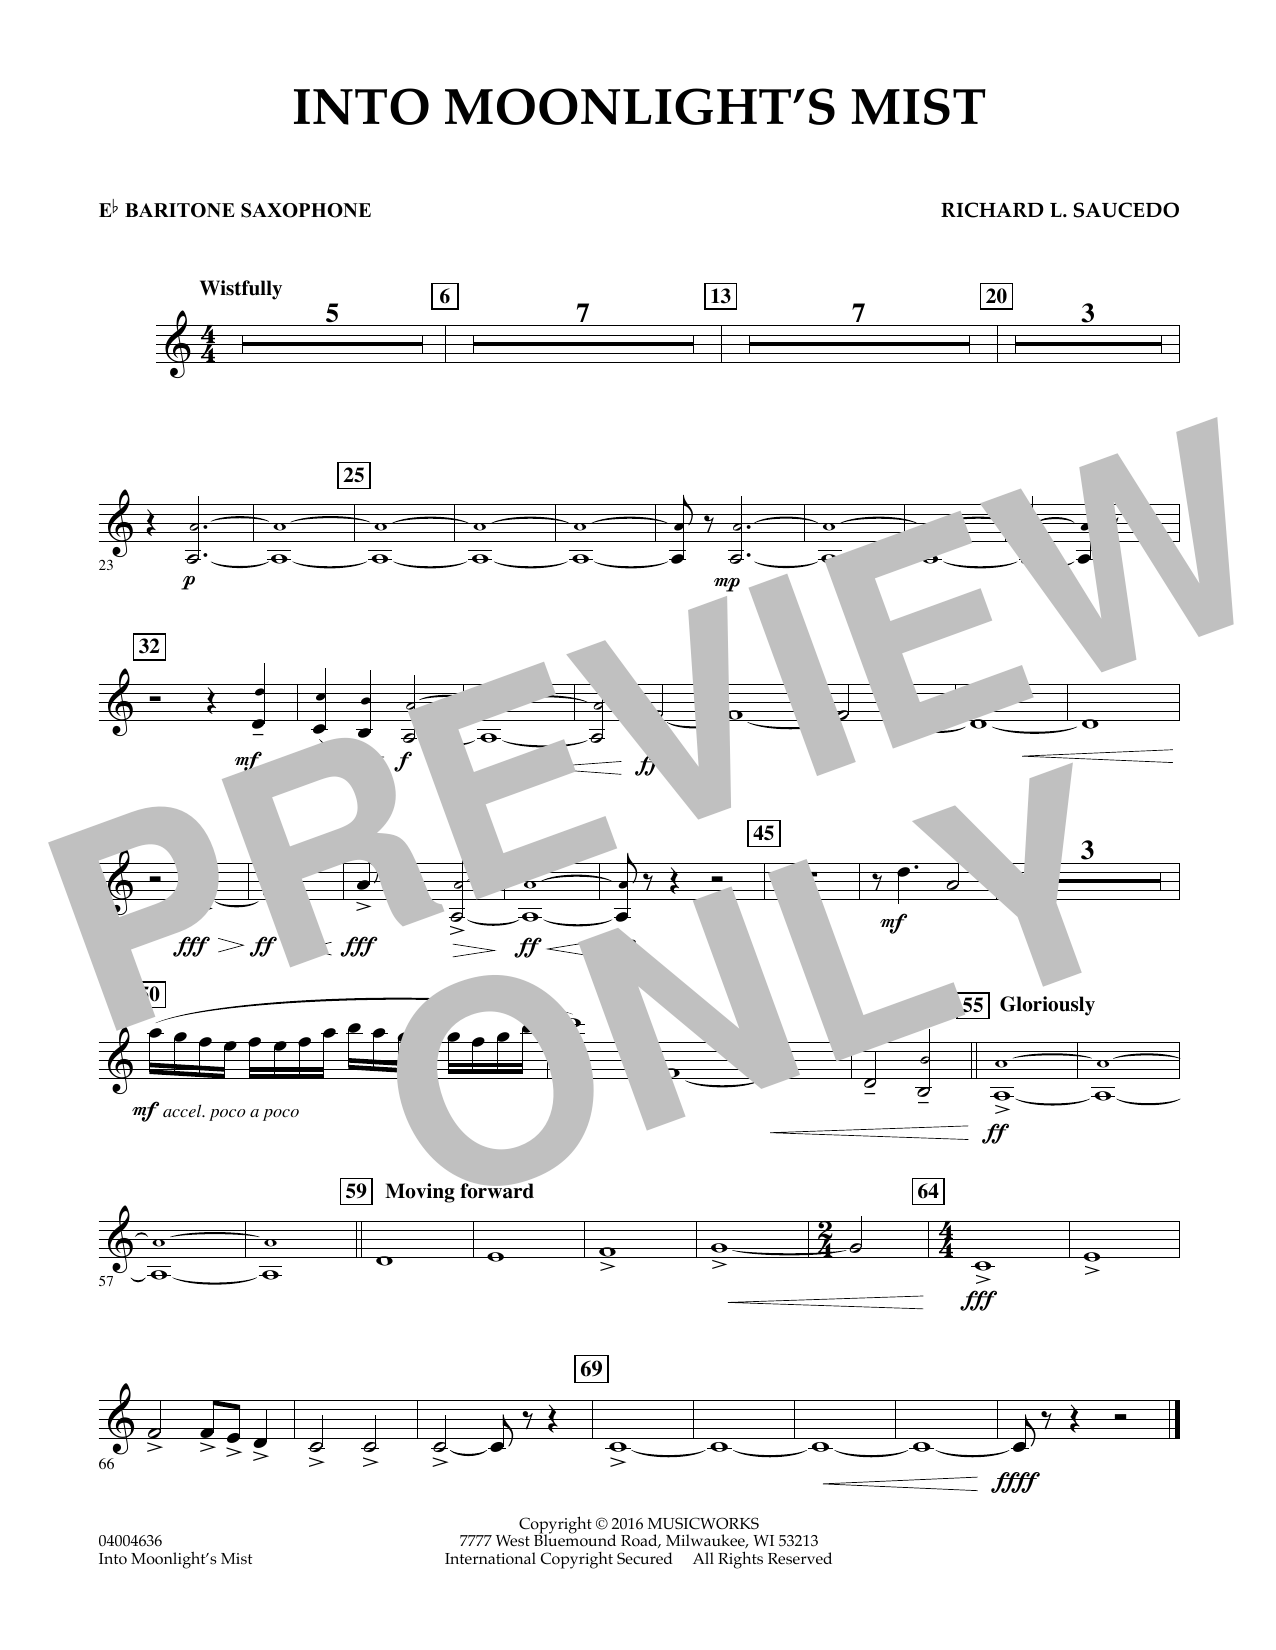 Into Moonlight's Mist - Eb Baritone Saxophone